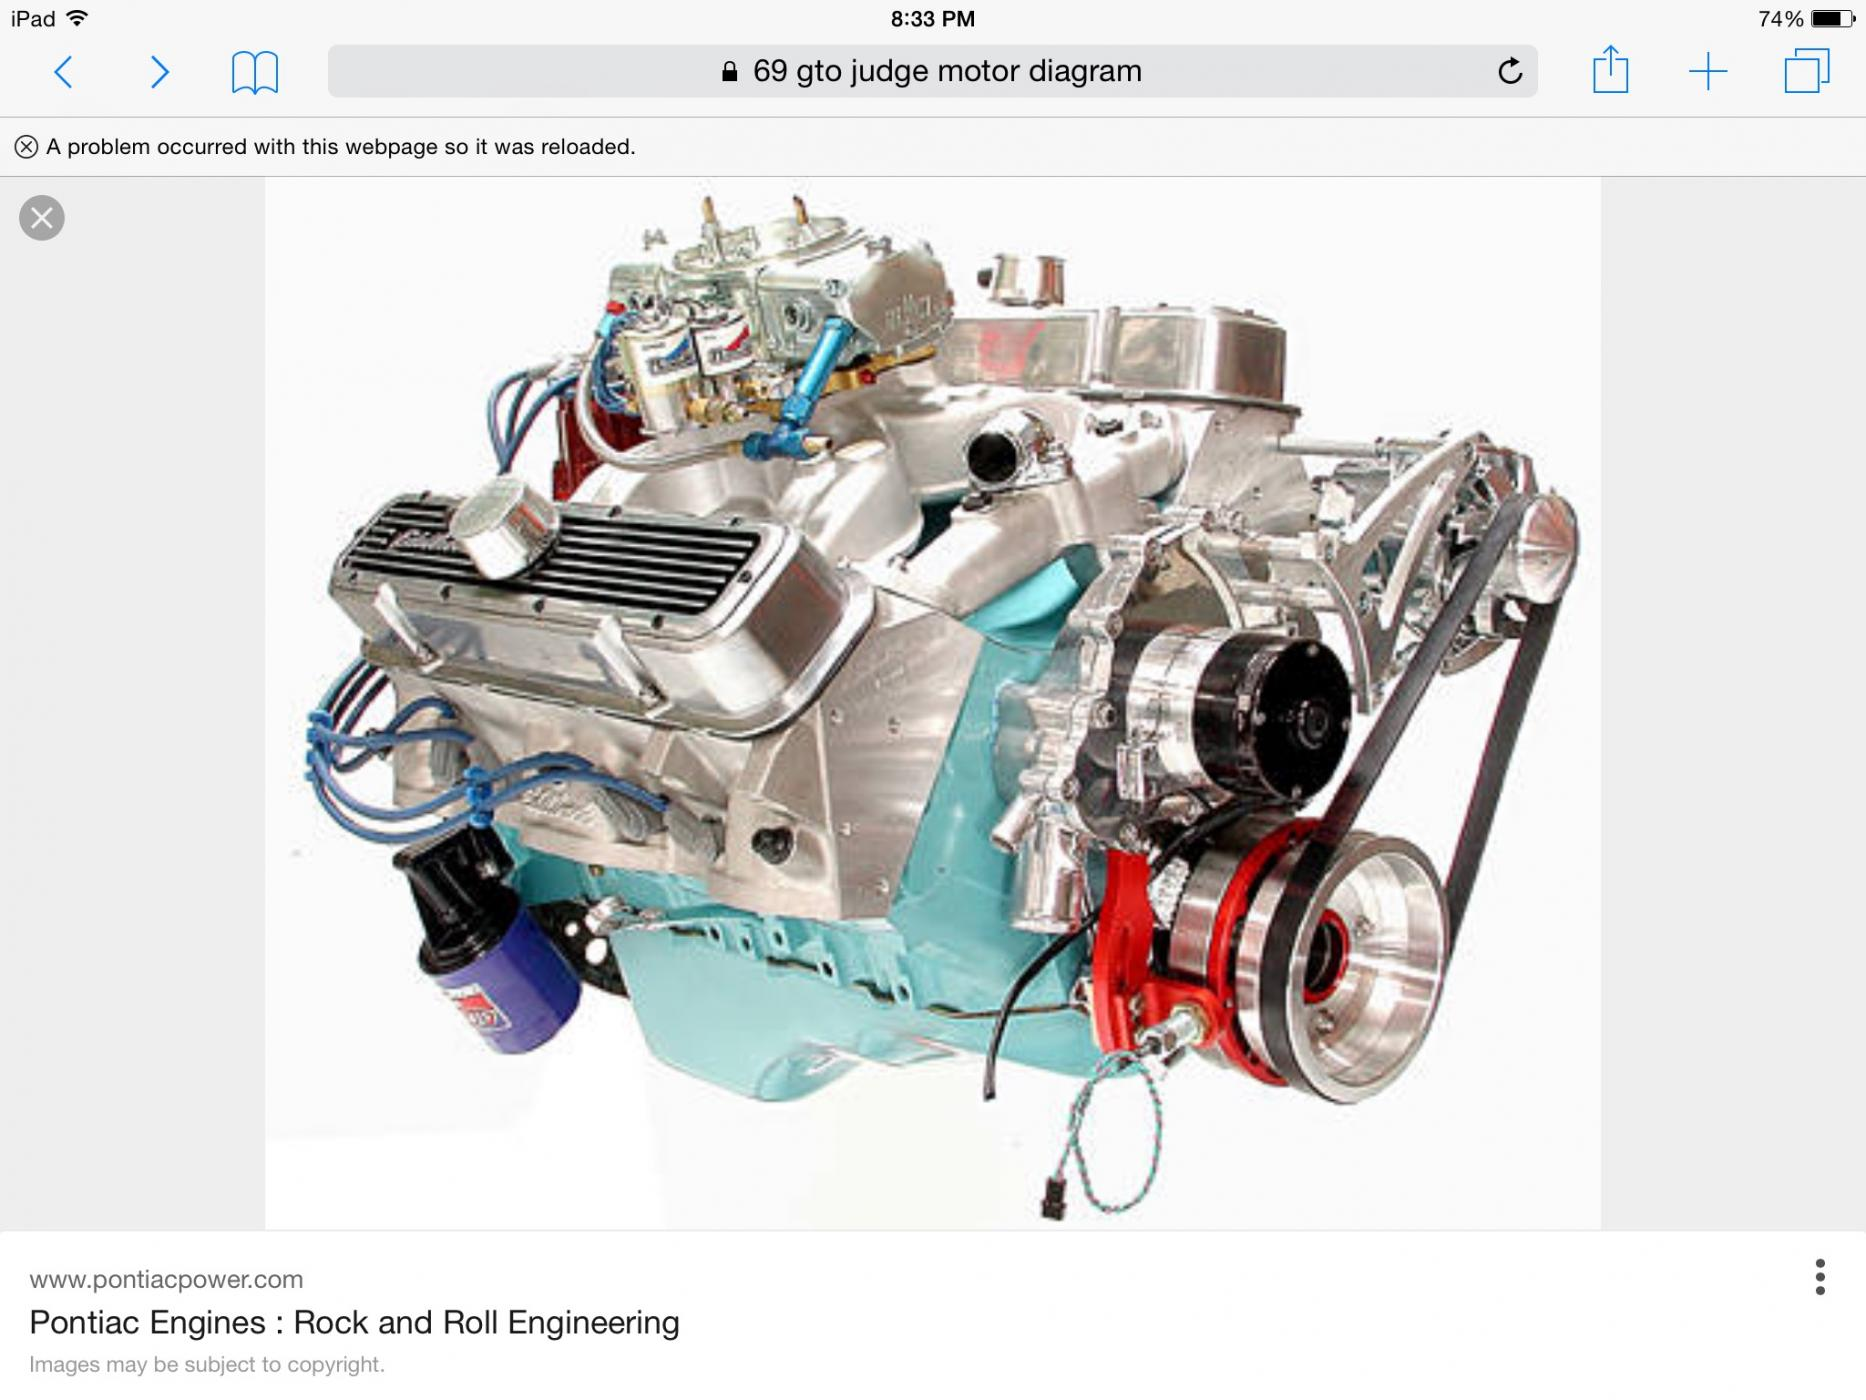 Mixing Colors To Brush Model Building Questions And Answers Pontiac Engine  Parts EBay 33 Pontiac Engine Diagram 8